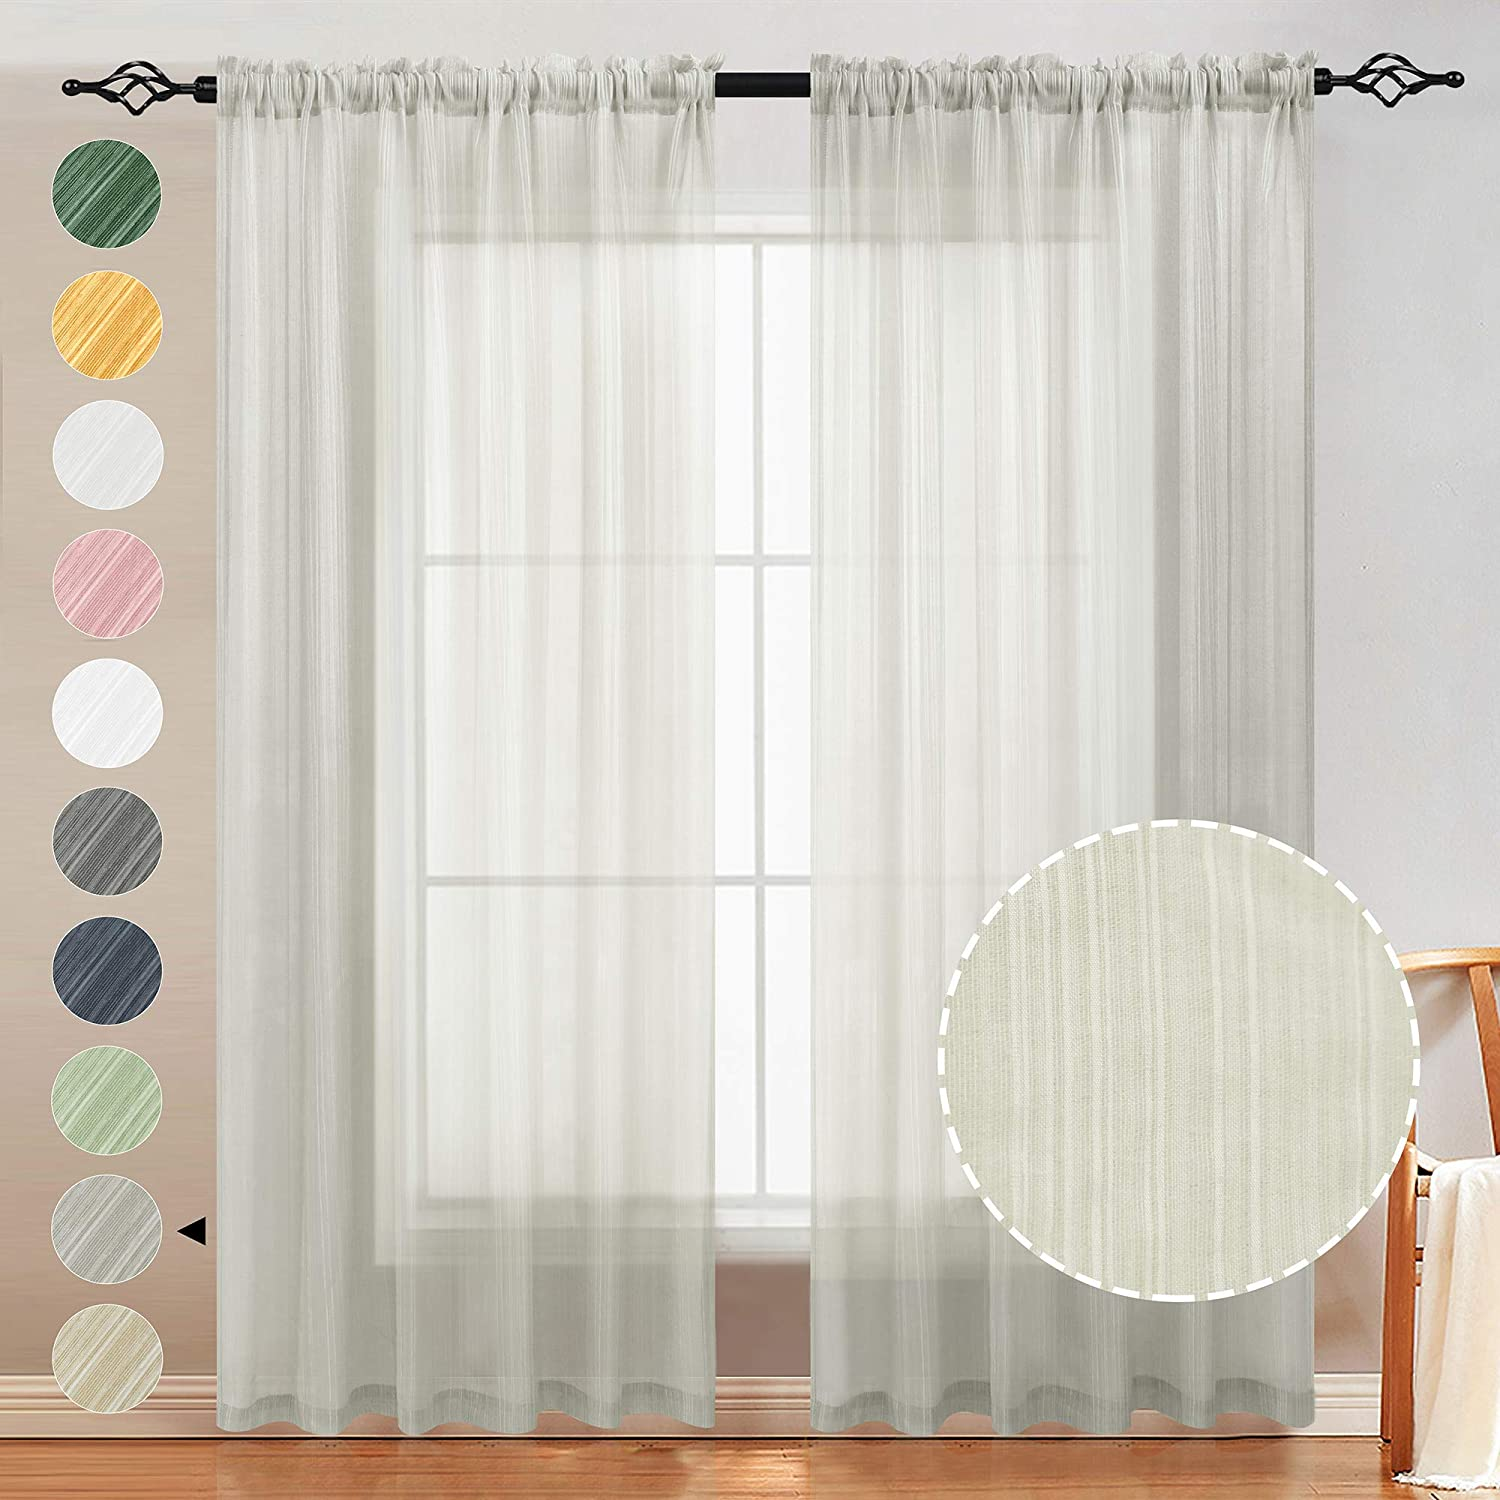 Amazon Natural Linen Sheer Curtains 2 Panels For 6 29 7 49 Reg Price 20 99 24 99 At Checkout Deals Finders